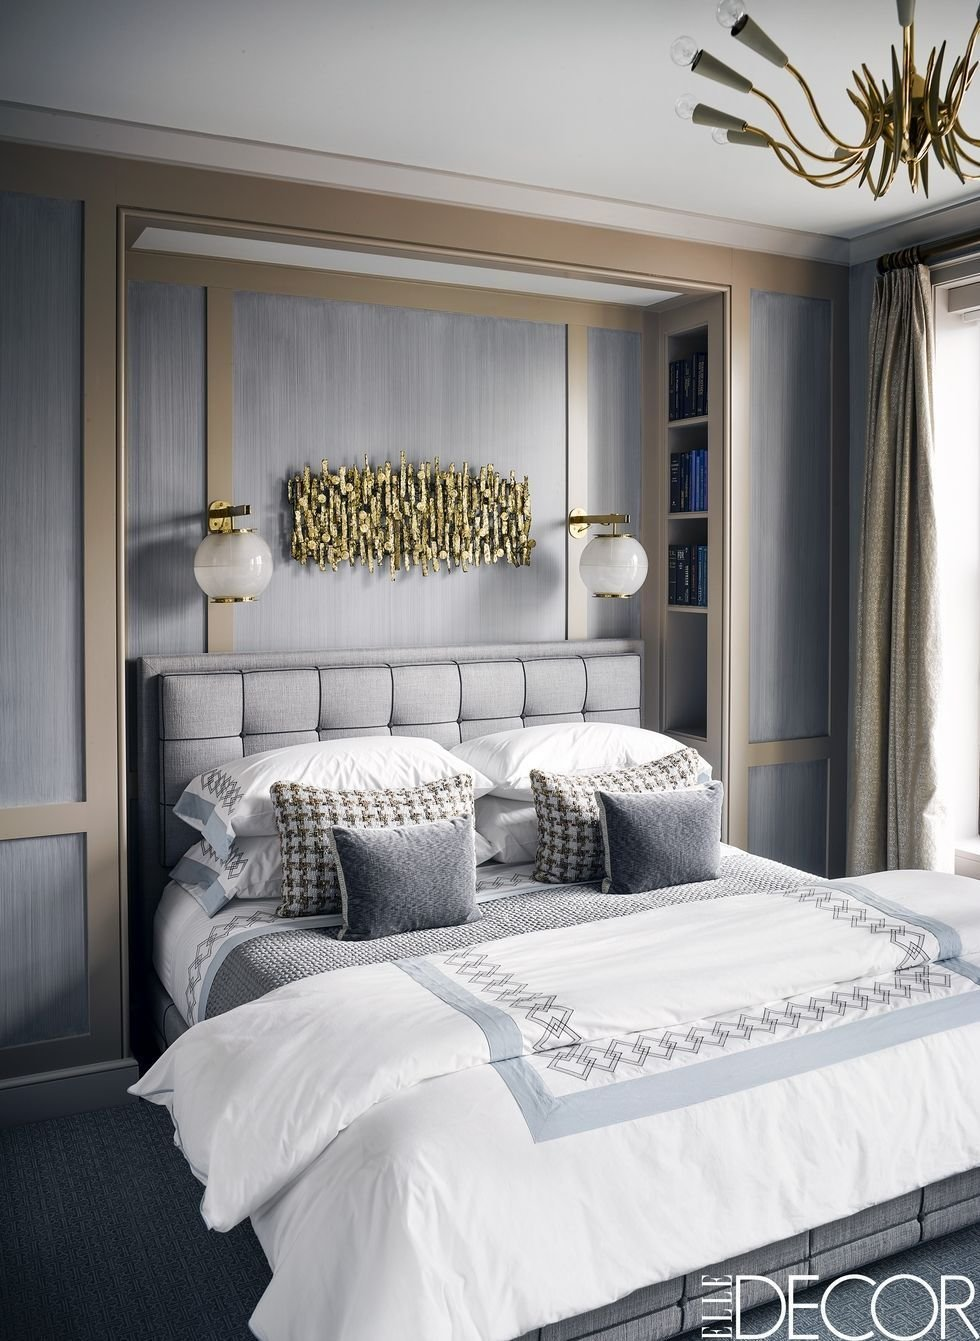 Best 43 Small Bedroom Design Ideas Decorating Tips For Small With Pictures